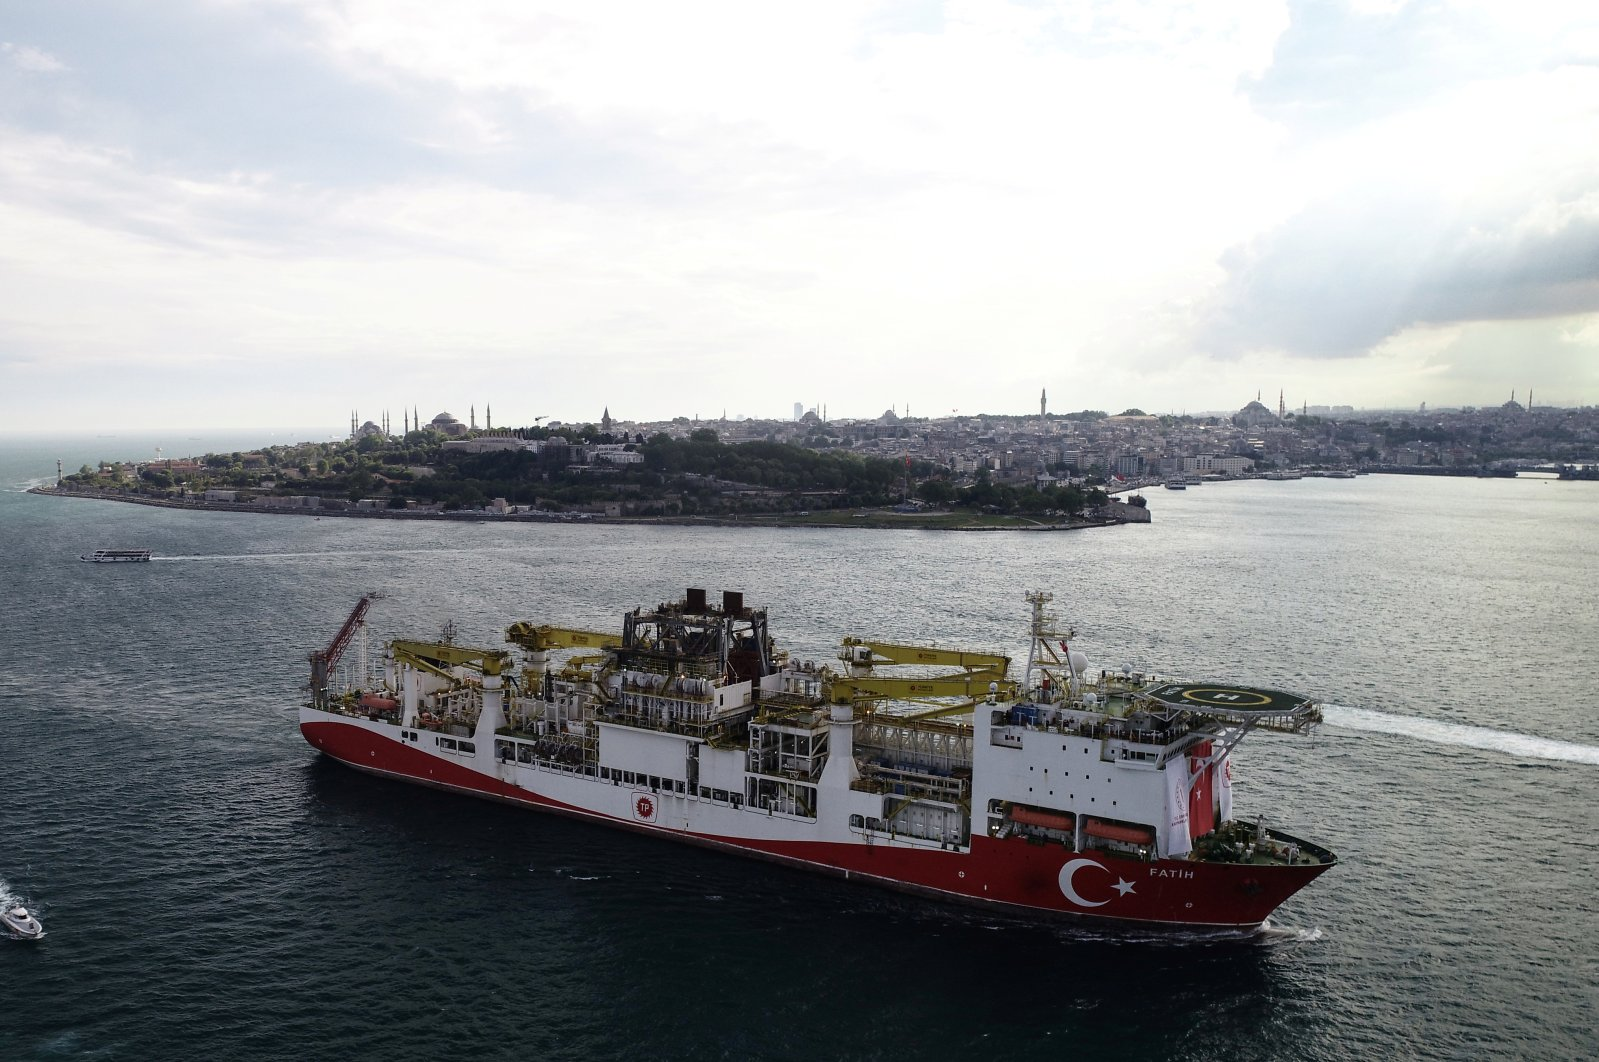 Turkish drilling vessel Fatih sails through Bosphorus as it leaves for the Black Sea in Istanbul, Turkey, May 29, 2020. (Reuters Photo)